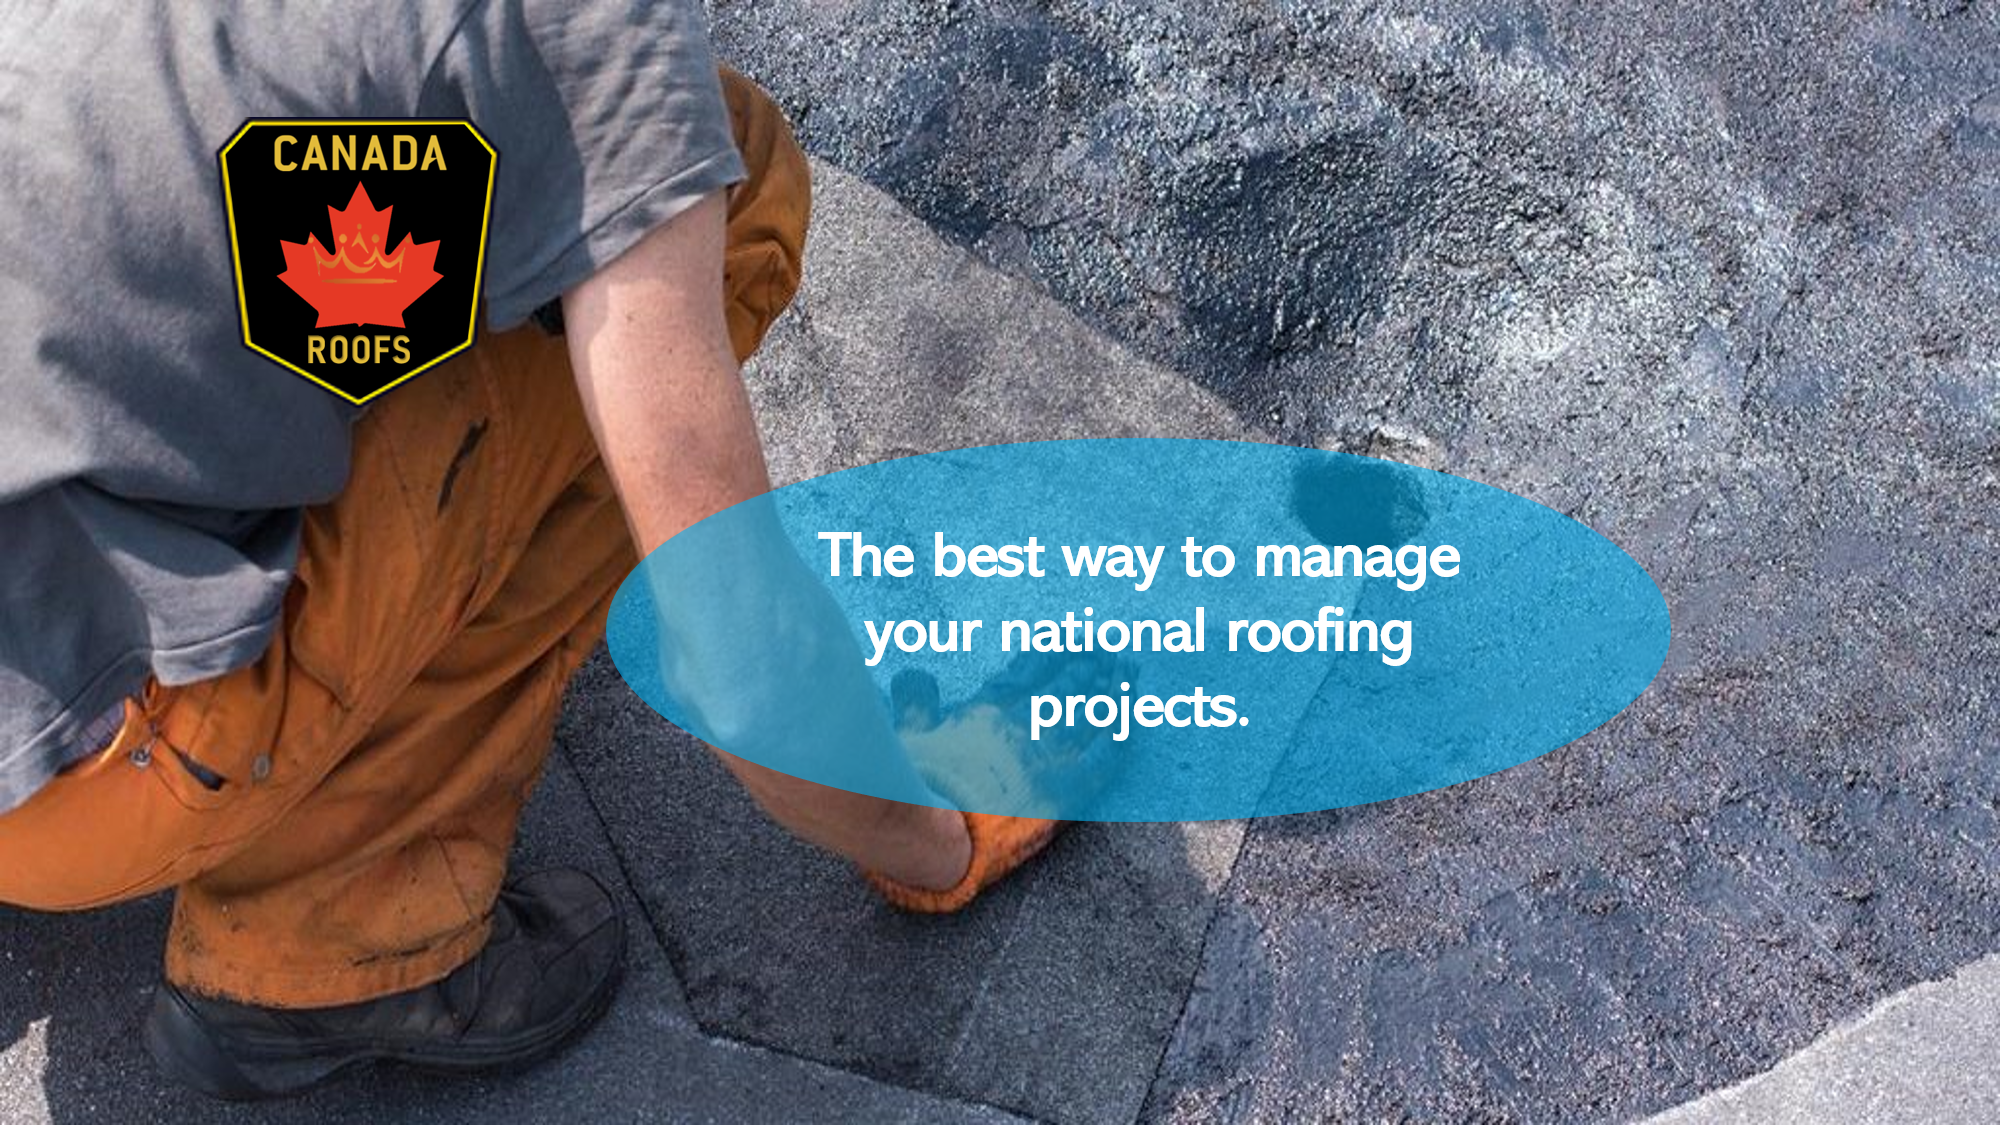 Canada Roofs   The best way to manage your national roofing